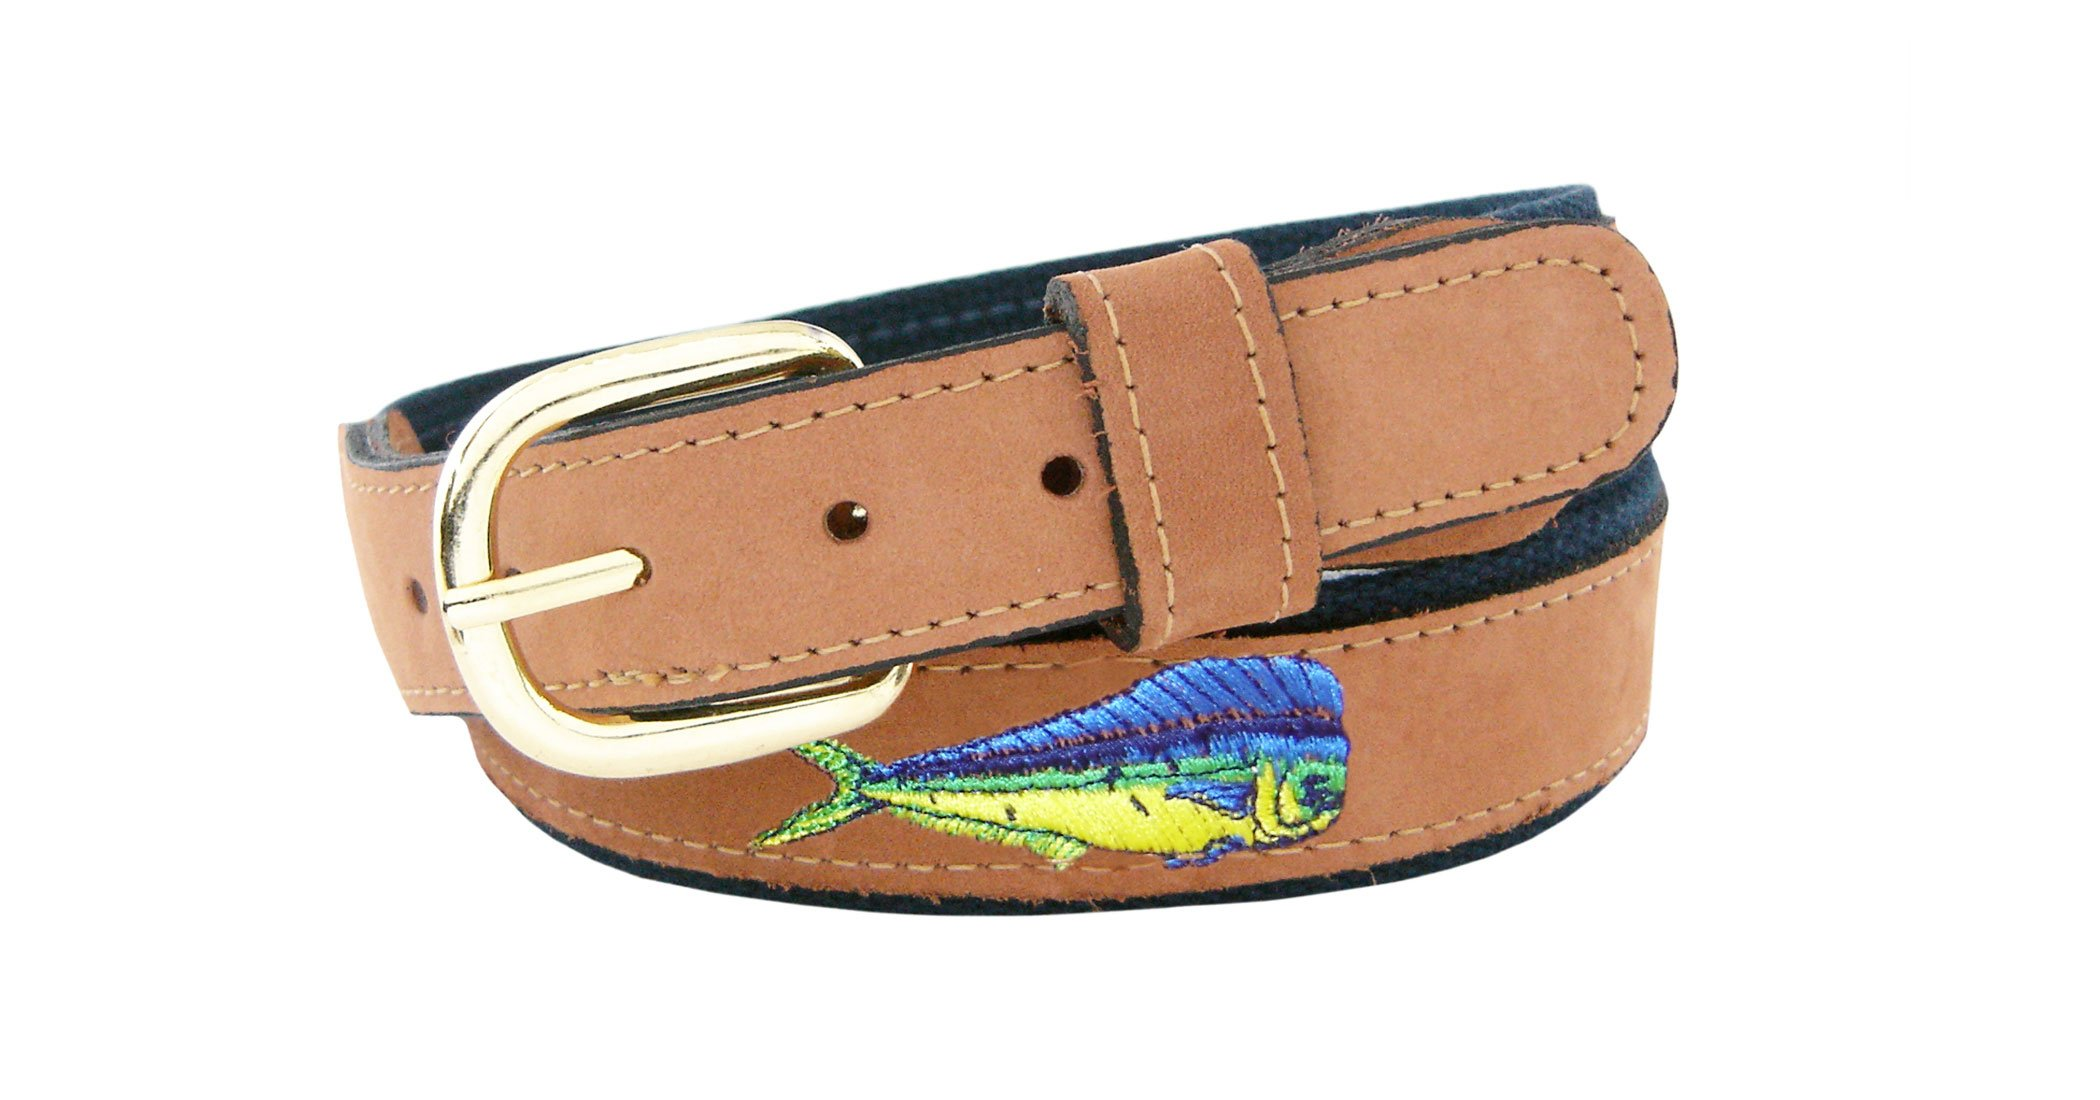 ZEP-PRO Men's Tan Leather Embroidered Dolphin Belt, 32-Inch, Tan/Navy